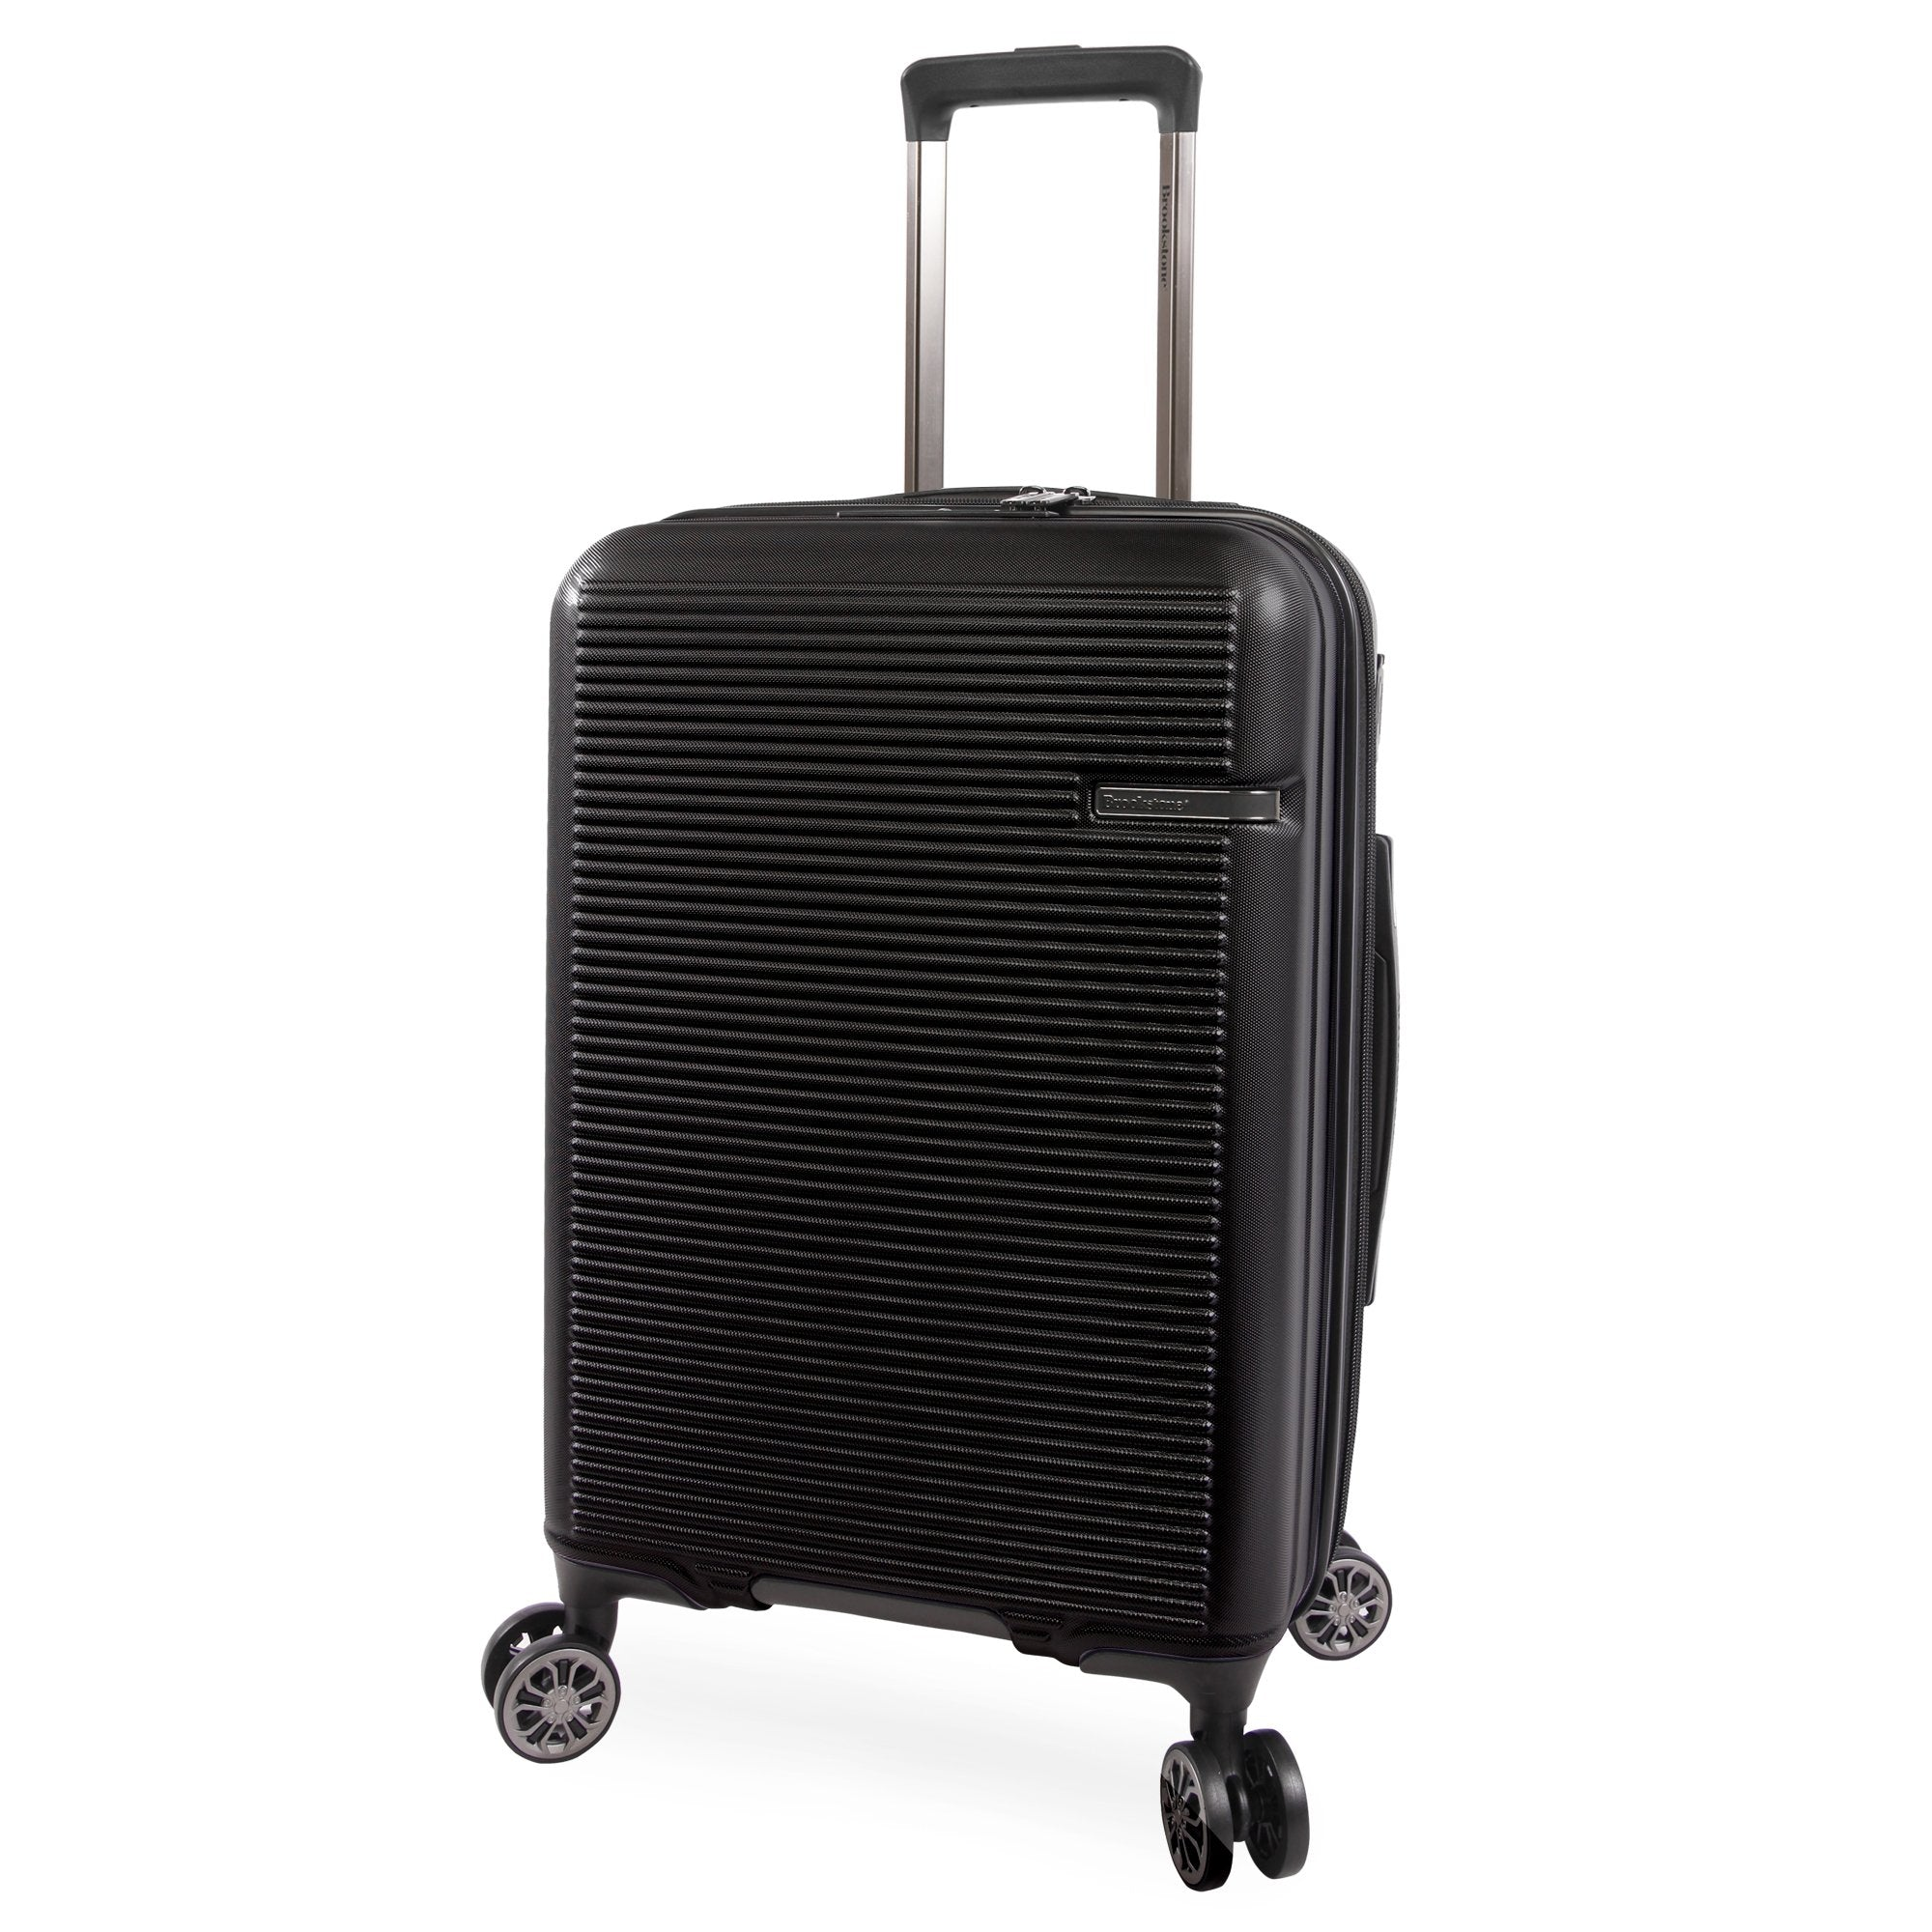 """American Traveler Brookstone Nelson 21"""" Hardside Carry-On Spinner in Navy, Size 21 Inch"""